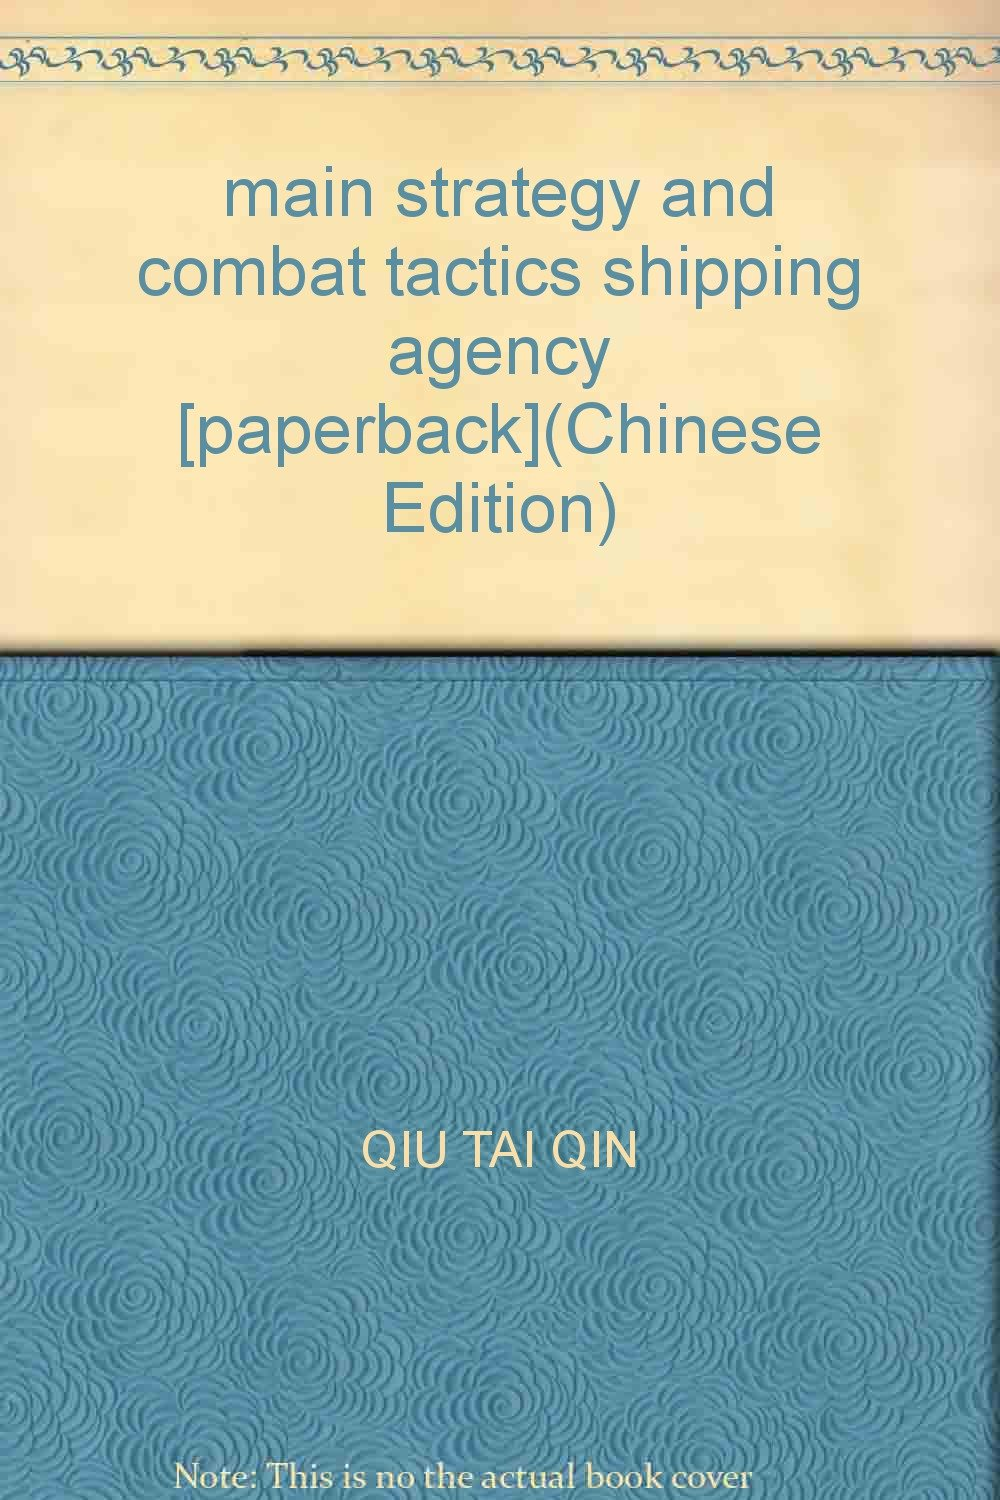 Download main strategy and combat tactics shipping agency [paperback](Chinese Edition) pdf